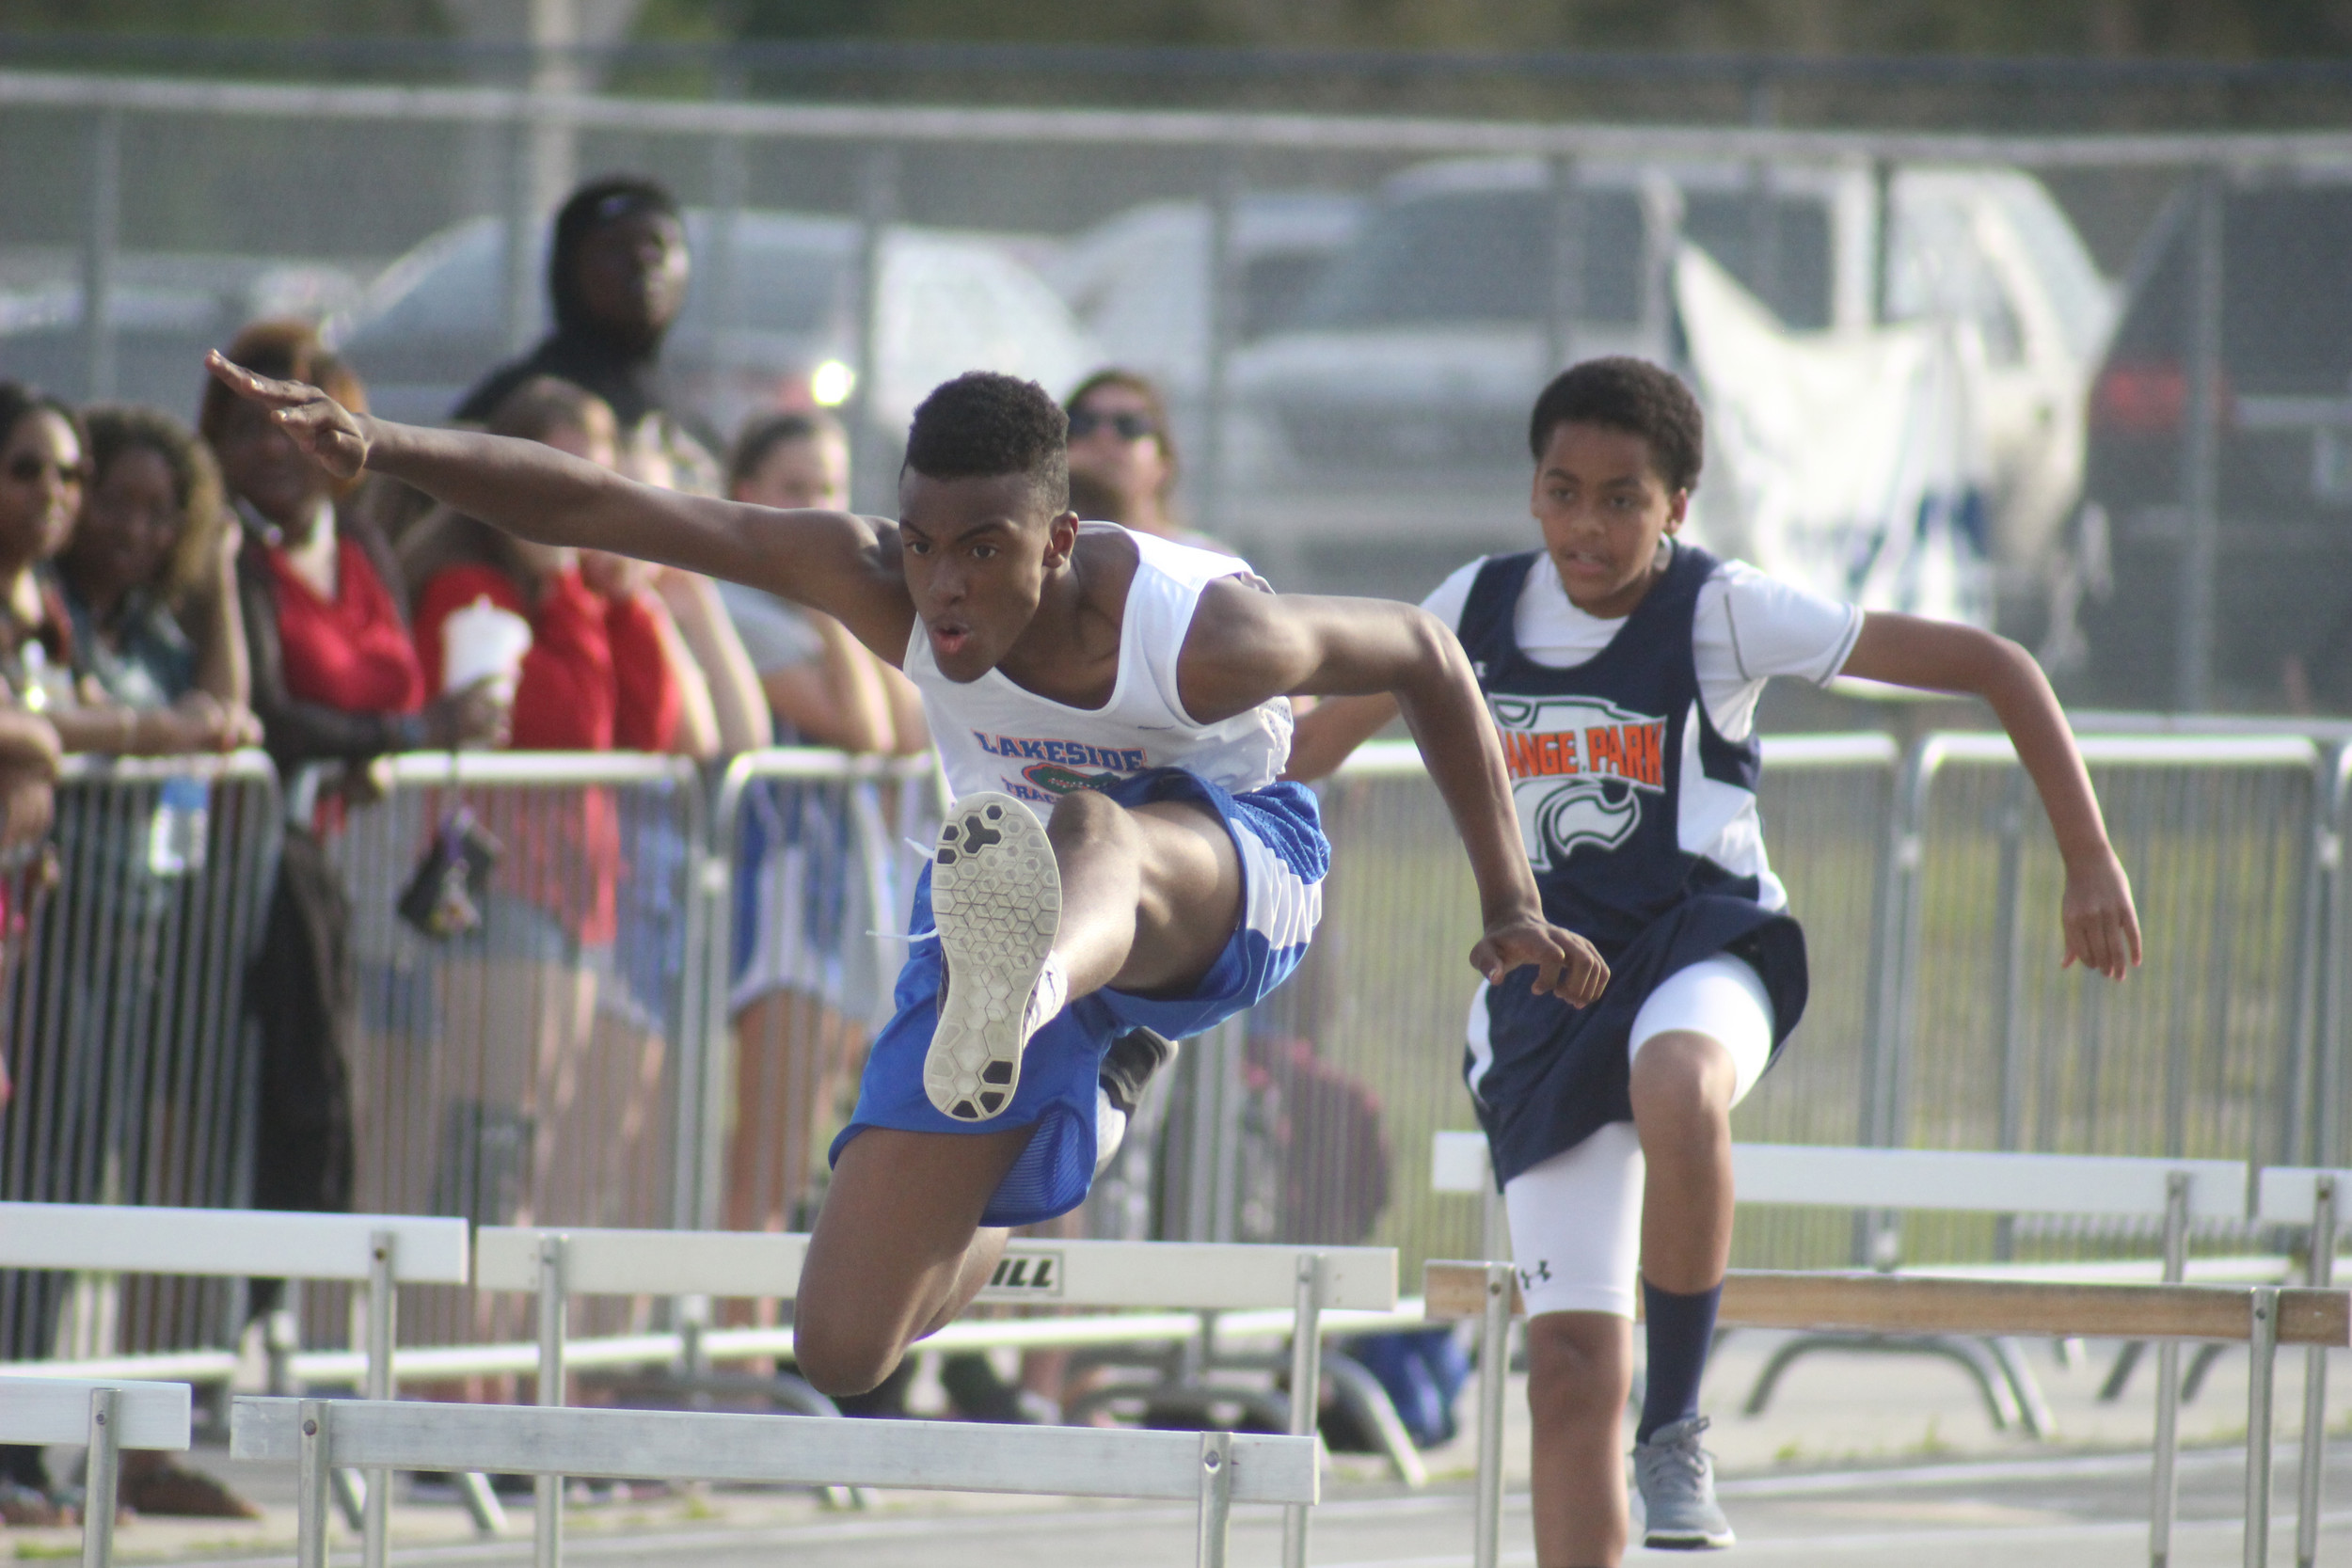 Lakeside Junior High hurdler Albert Williams, here battling with Orange Park Junior High in recent dual match, will be striding out in the Clay County Junior High Track and Field Championships to be held Fri., April 15 at Orange Park High School.